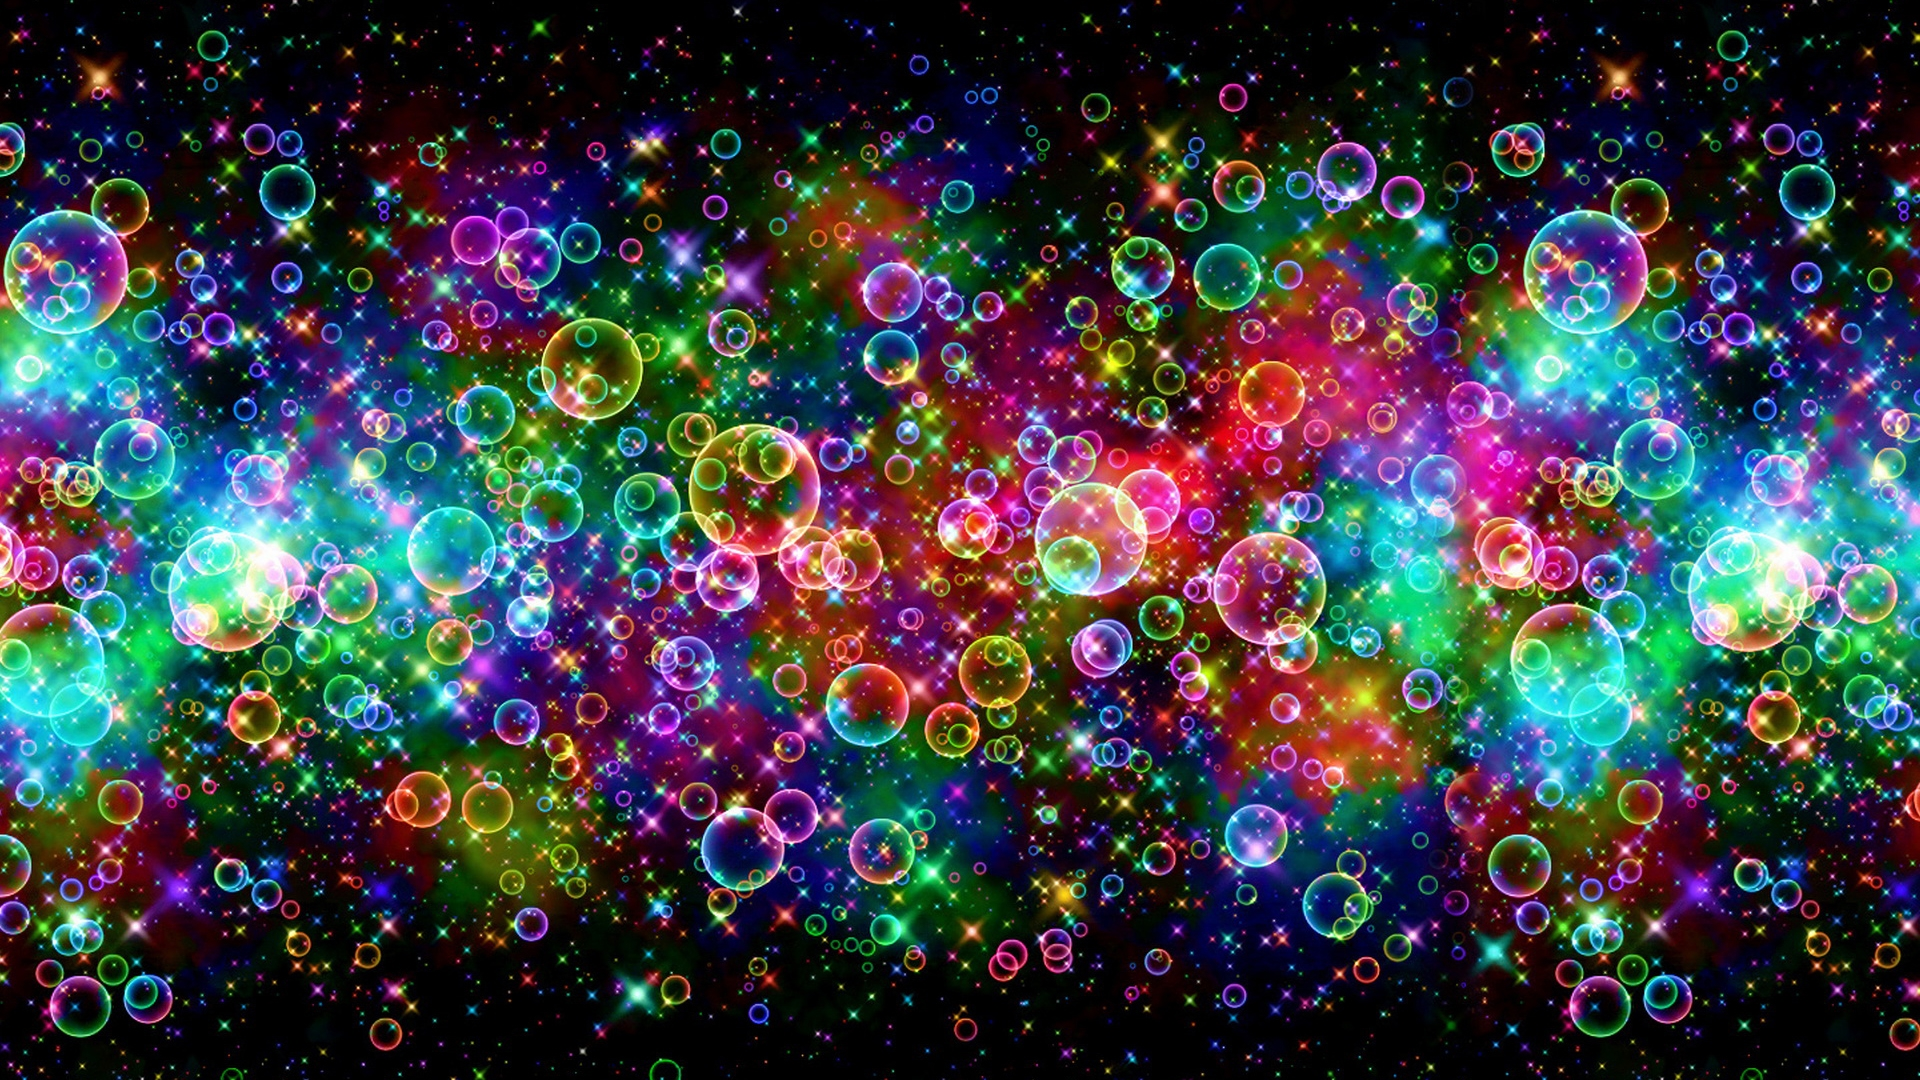 Colorful Wallpaper: Stunning Colorful D Wallpaper 1920x1080px